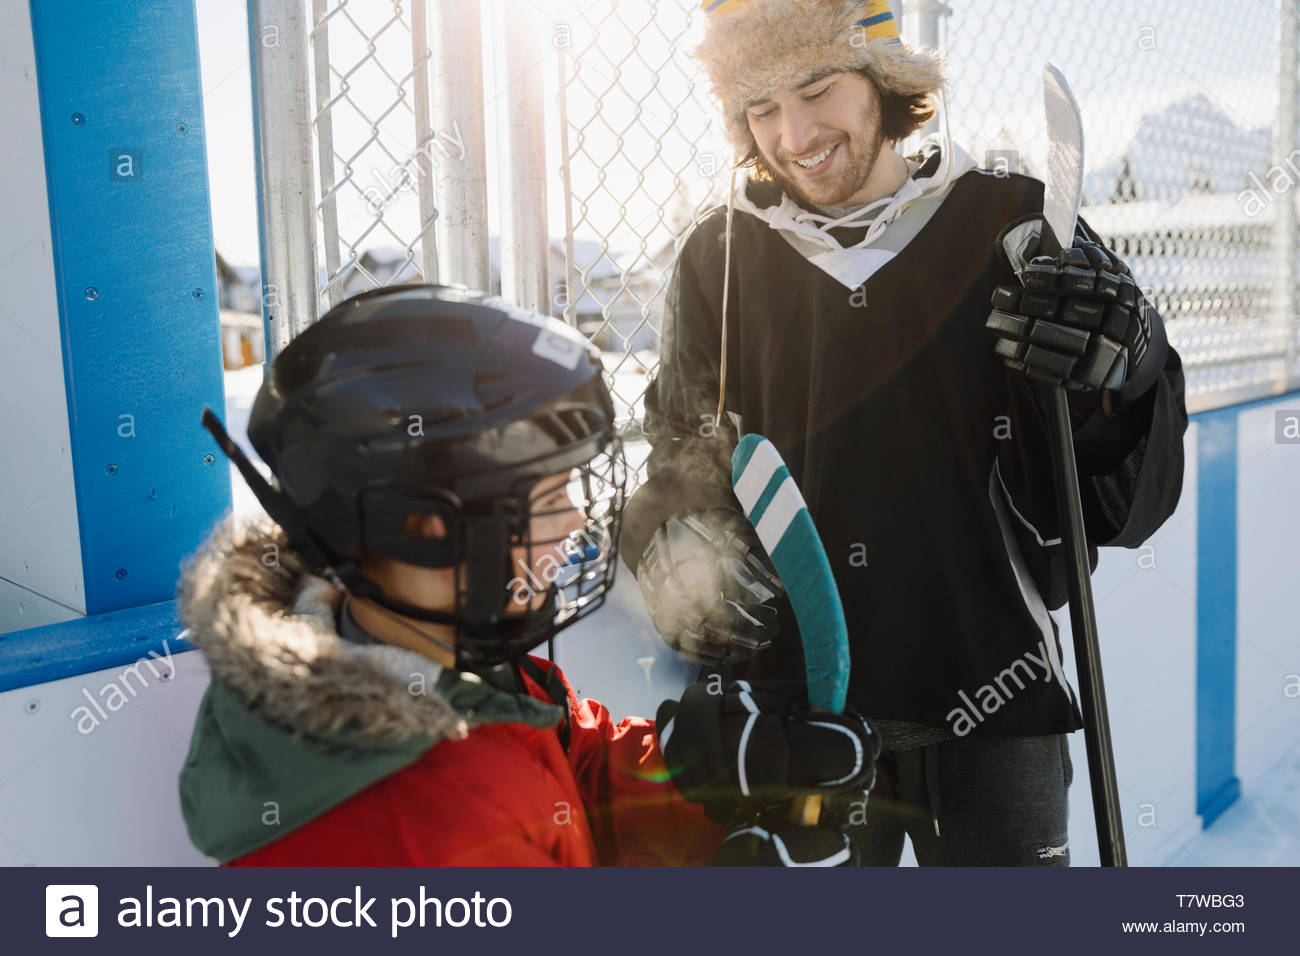 Brother and sister playing outdoor ice hockey - Stock Image